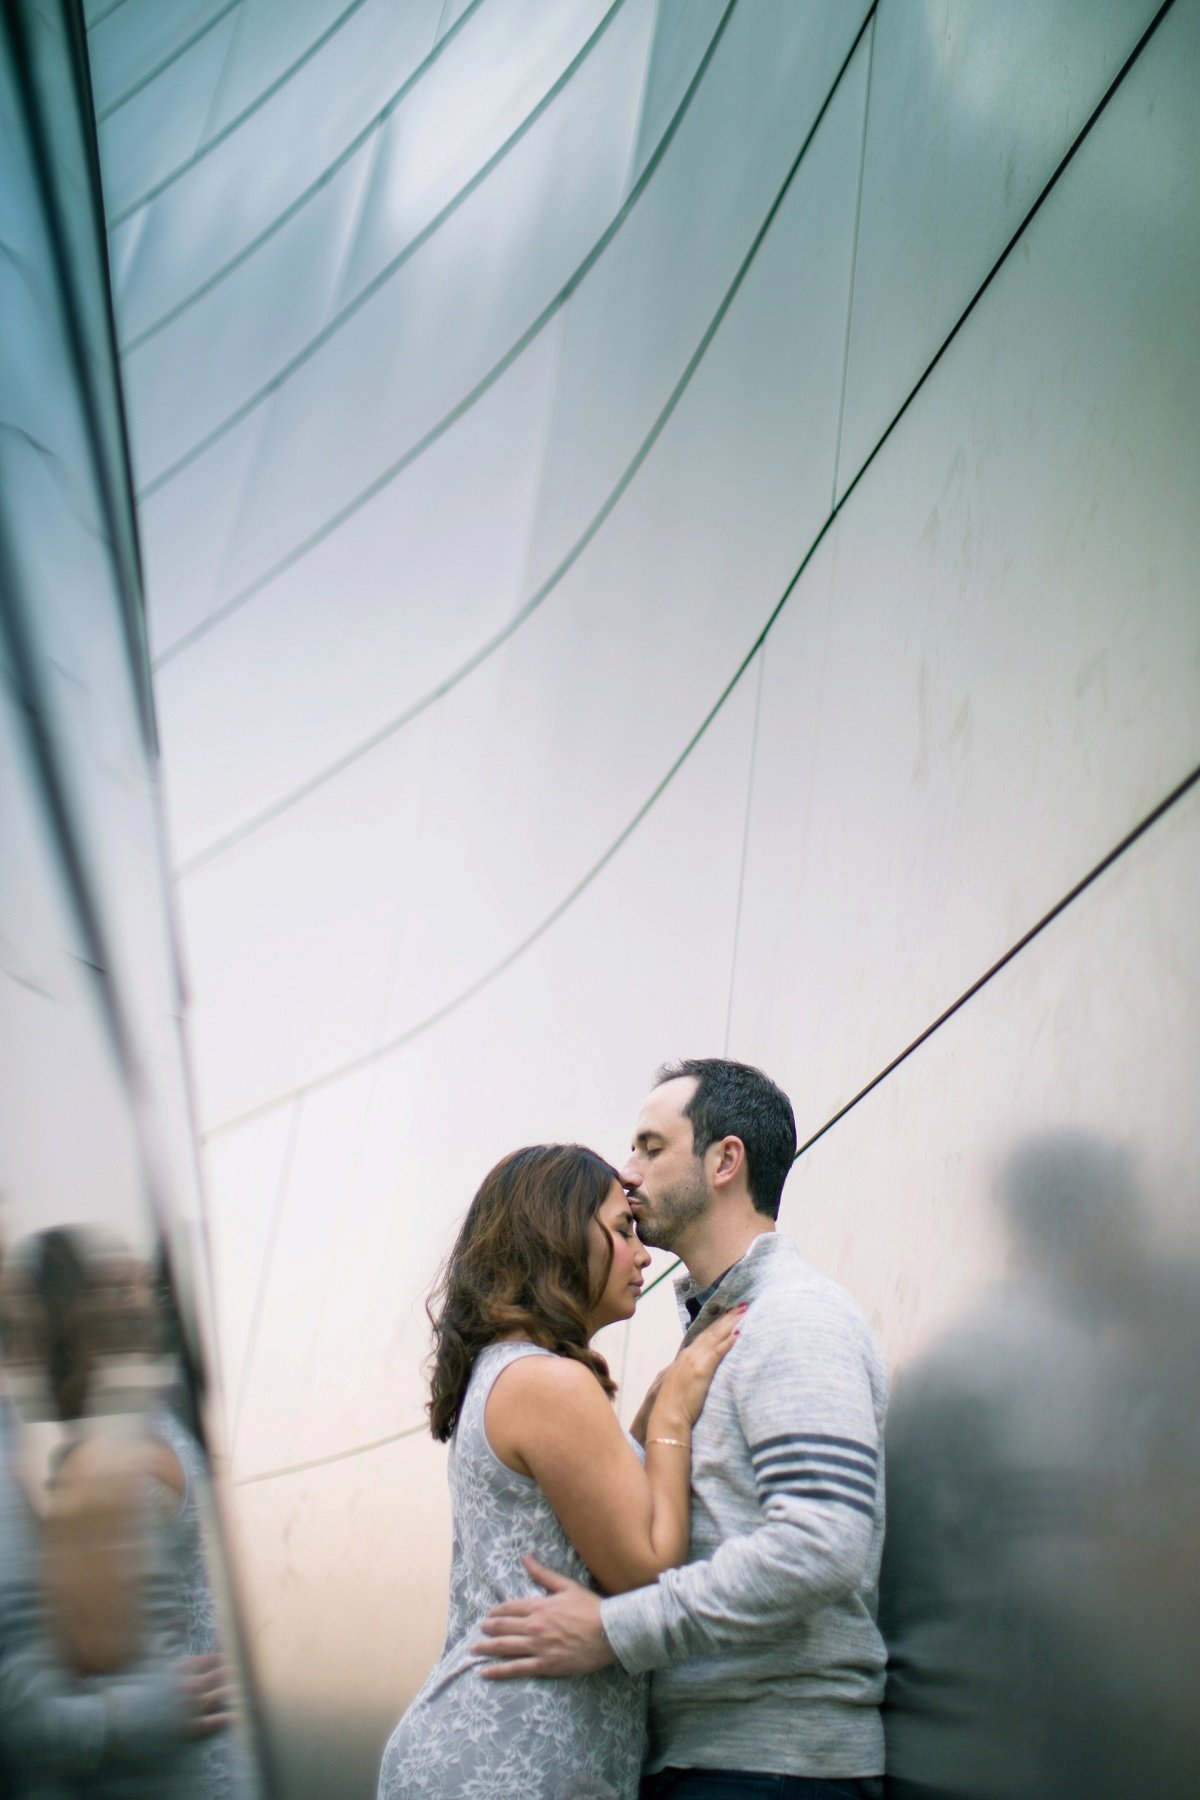 Walt Disney Concert Hall Photographer & Los Angeles Wedding Photography Engagement Photos In Orange County by Three16 Photography